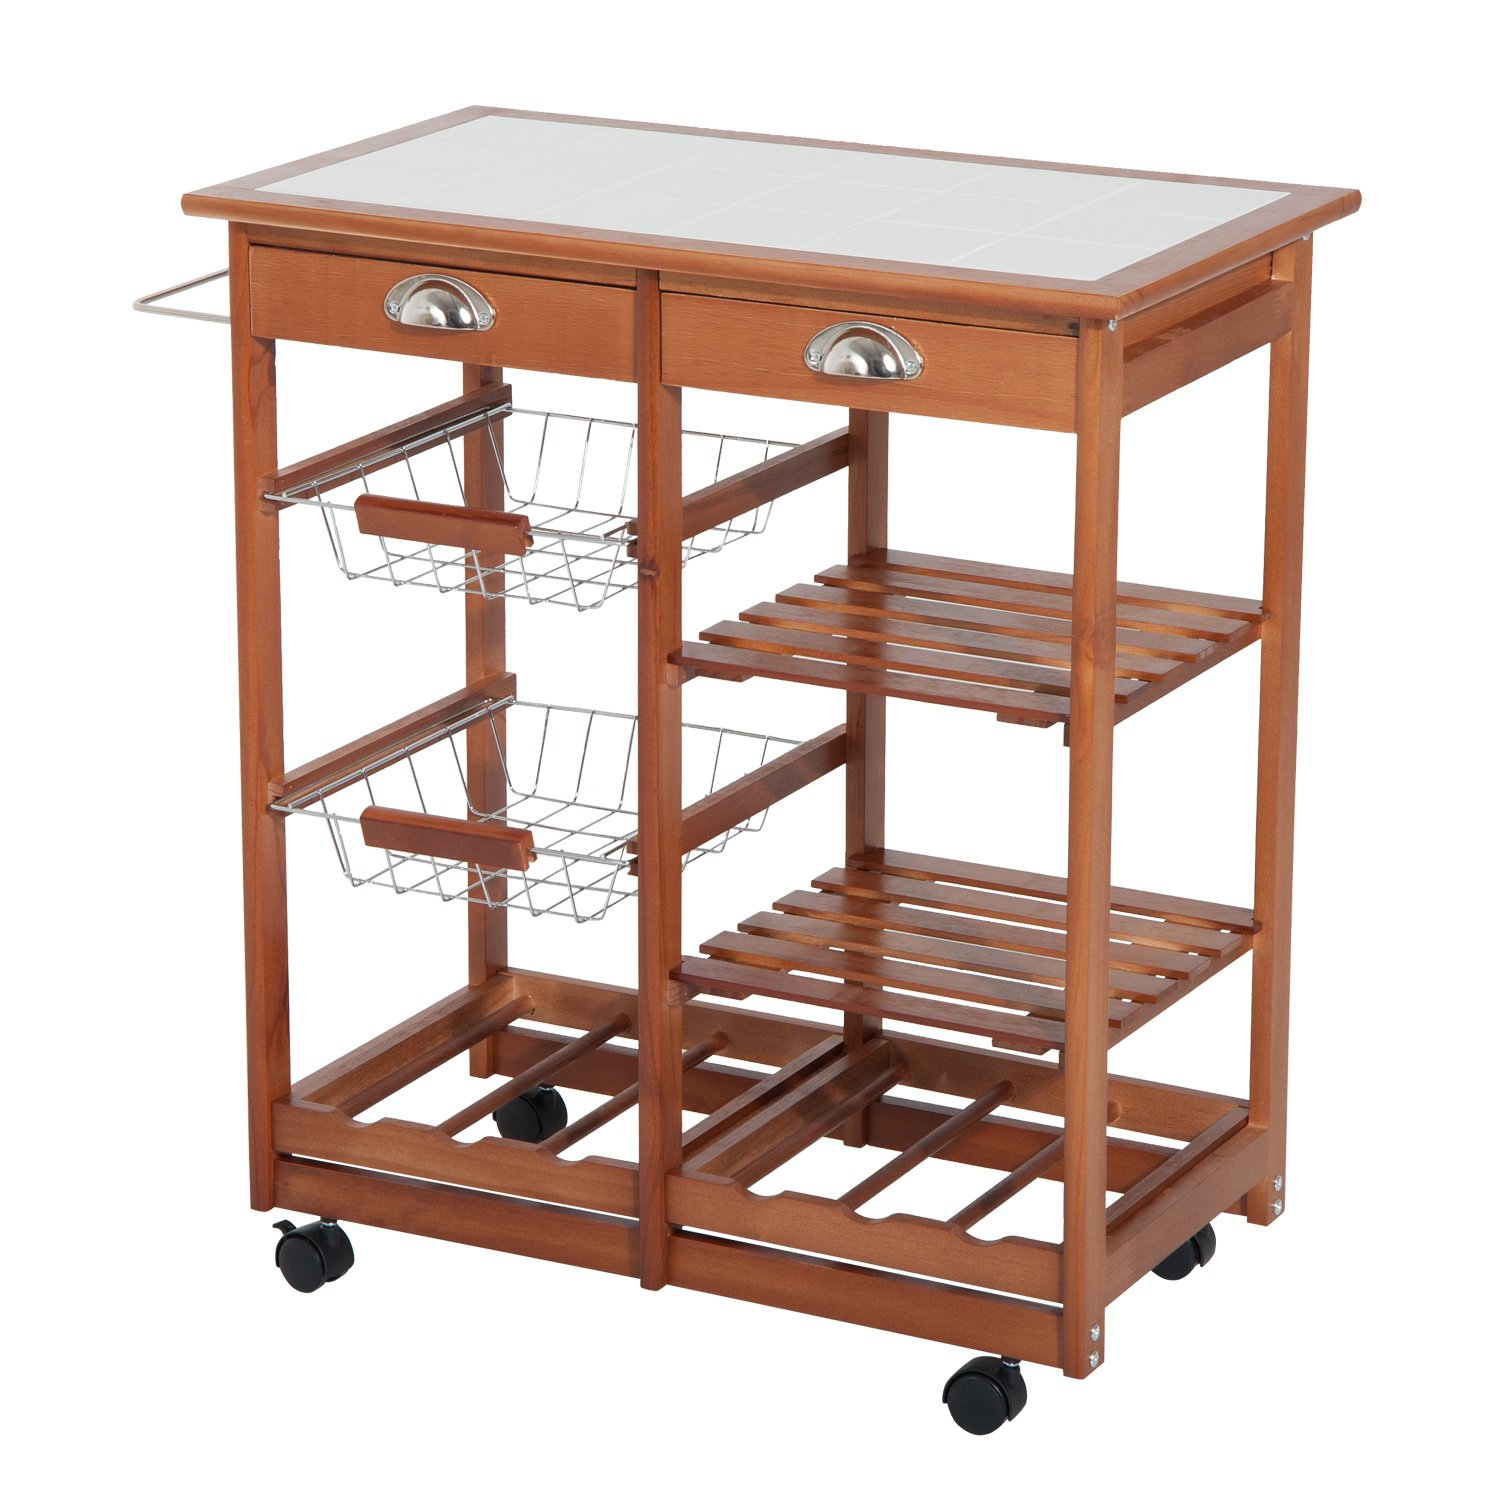 HOMCOM Rolling Kitchen Trolley Cart 4 Tier Storage Wooden Table Rack 2 Drawers Baskets Countertop Aosom Canada